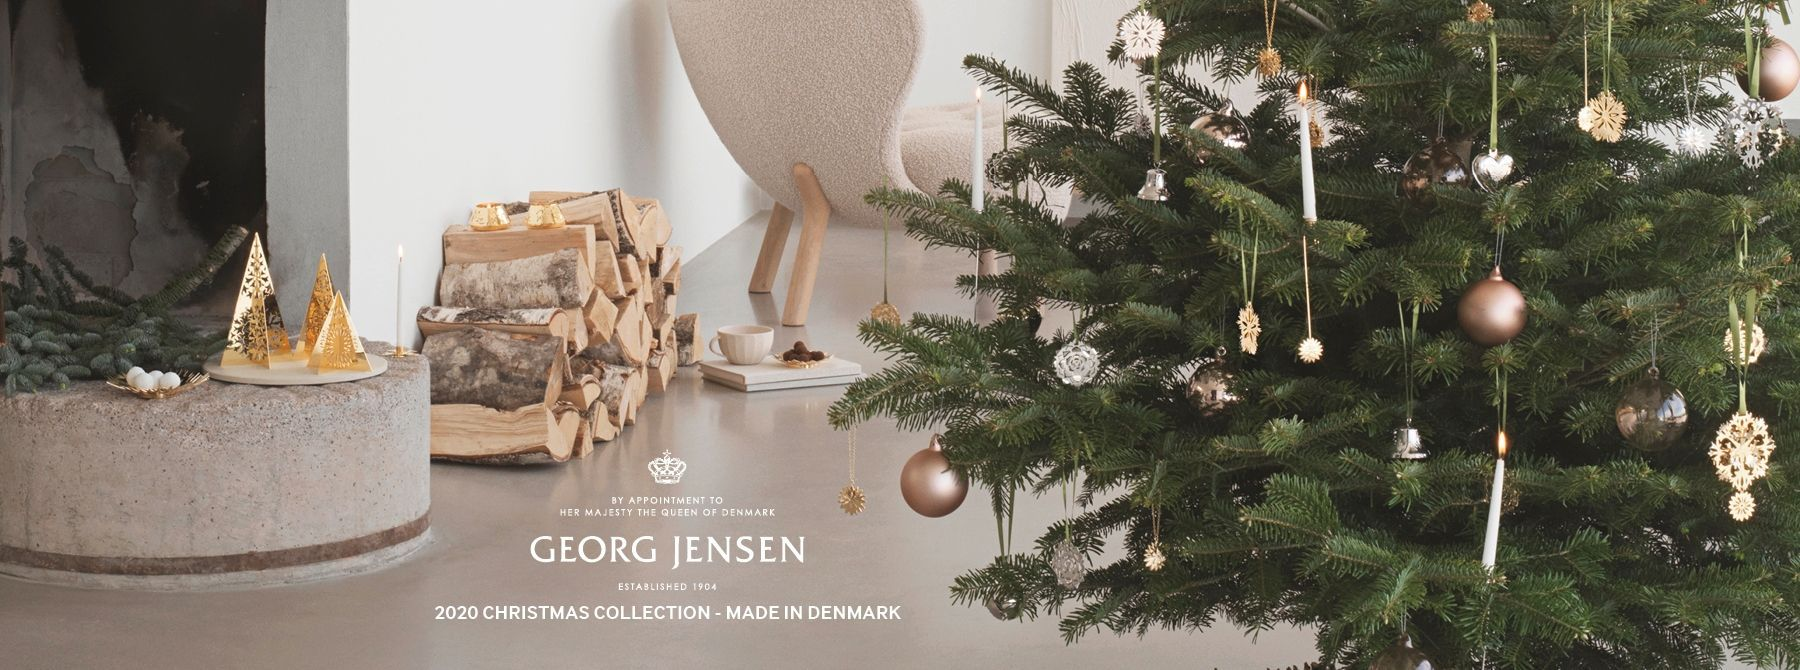 2020 Georg Jensen Annual Christmas Collection